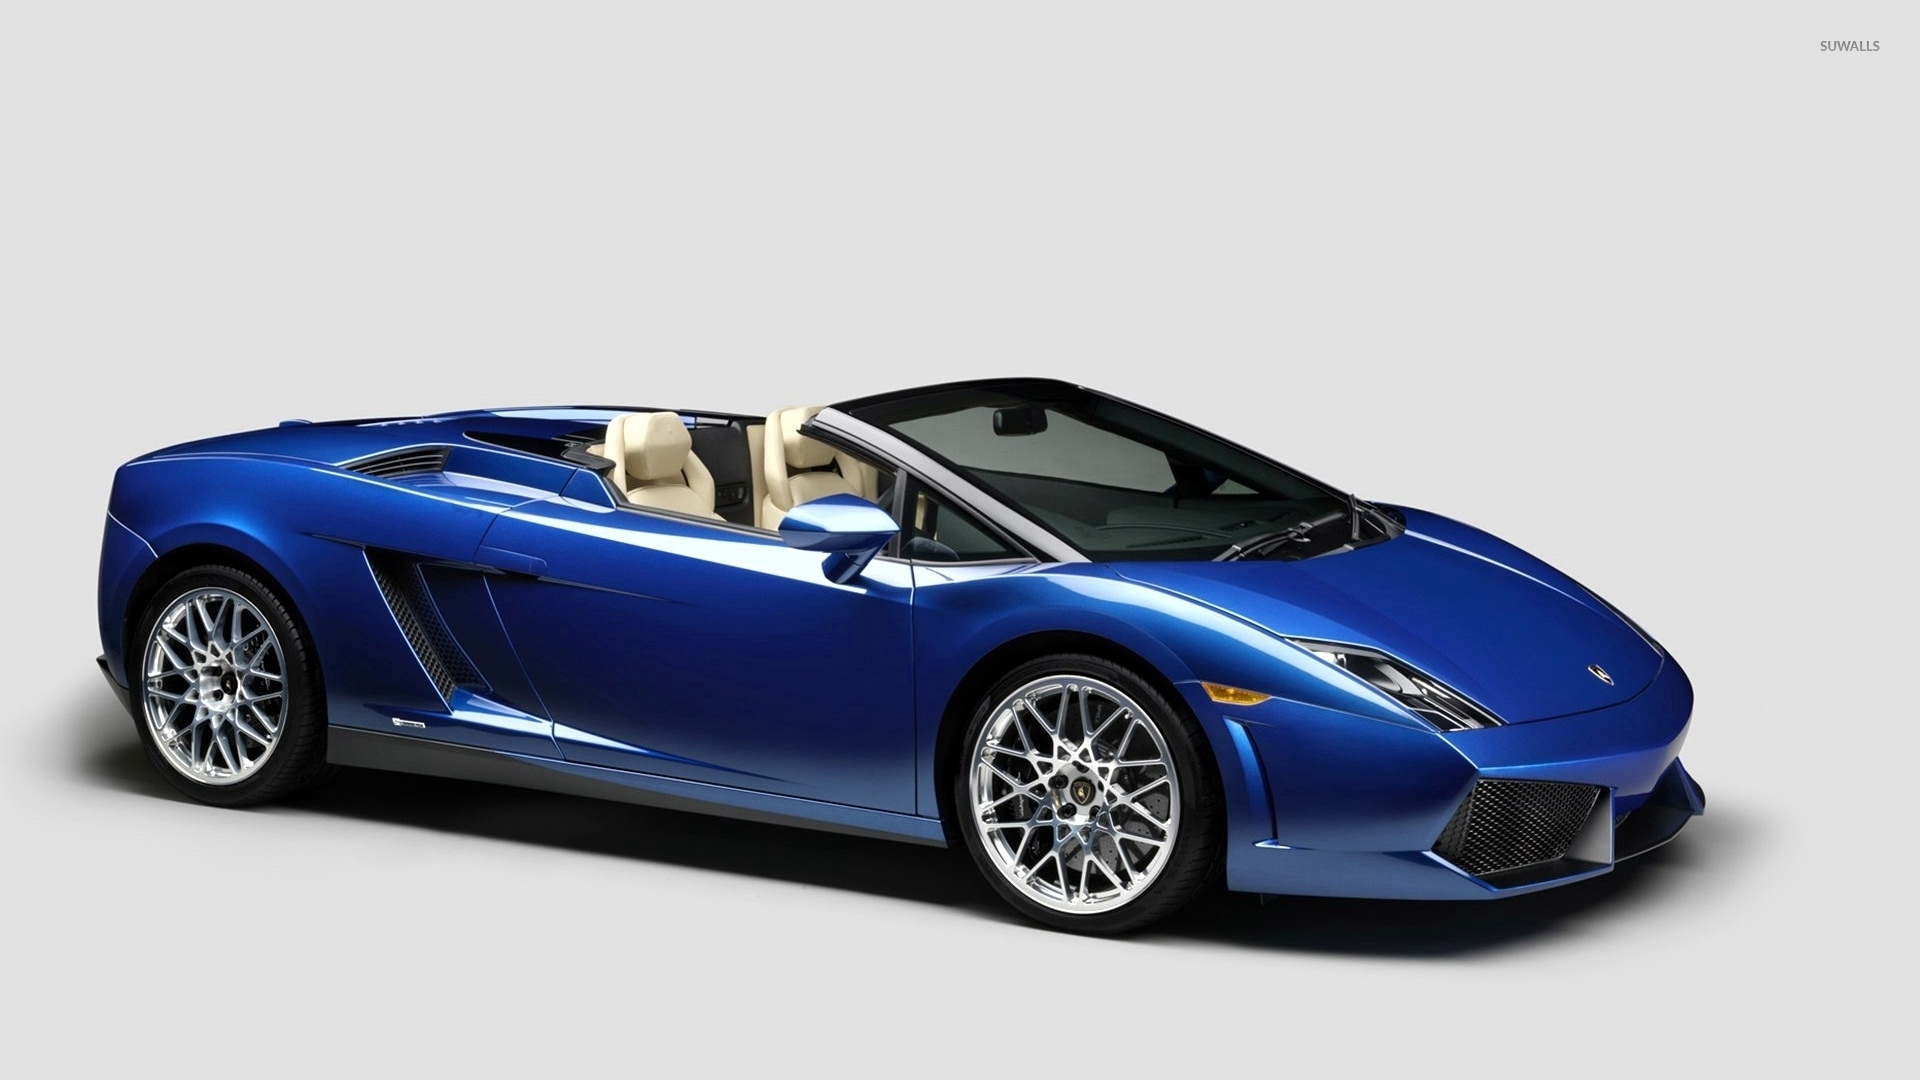 front side view of a blue lamborghini gallardo wallpaper - Lamborghini Gallardo Wallpaper Blue